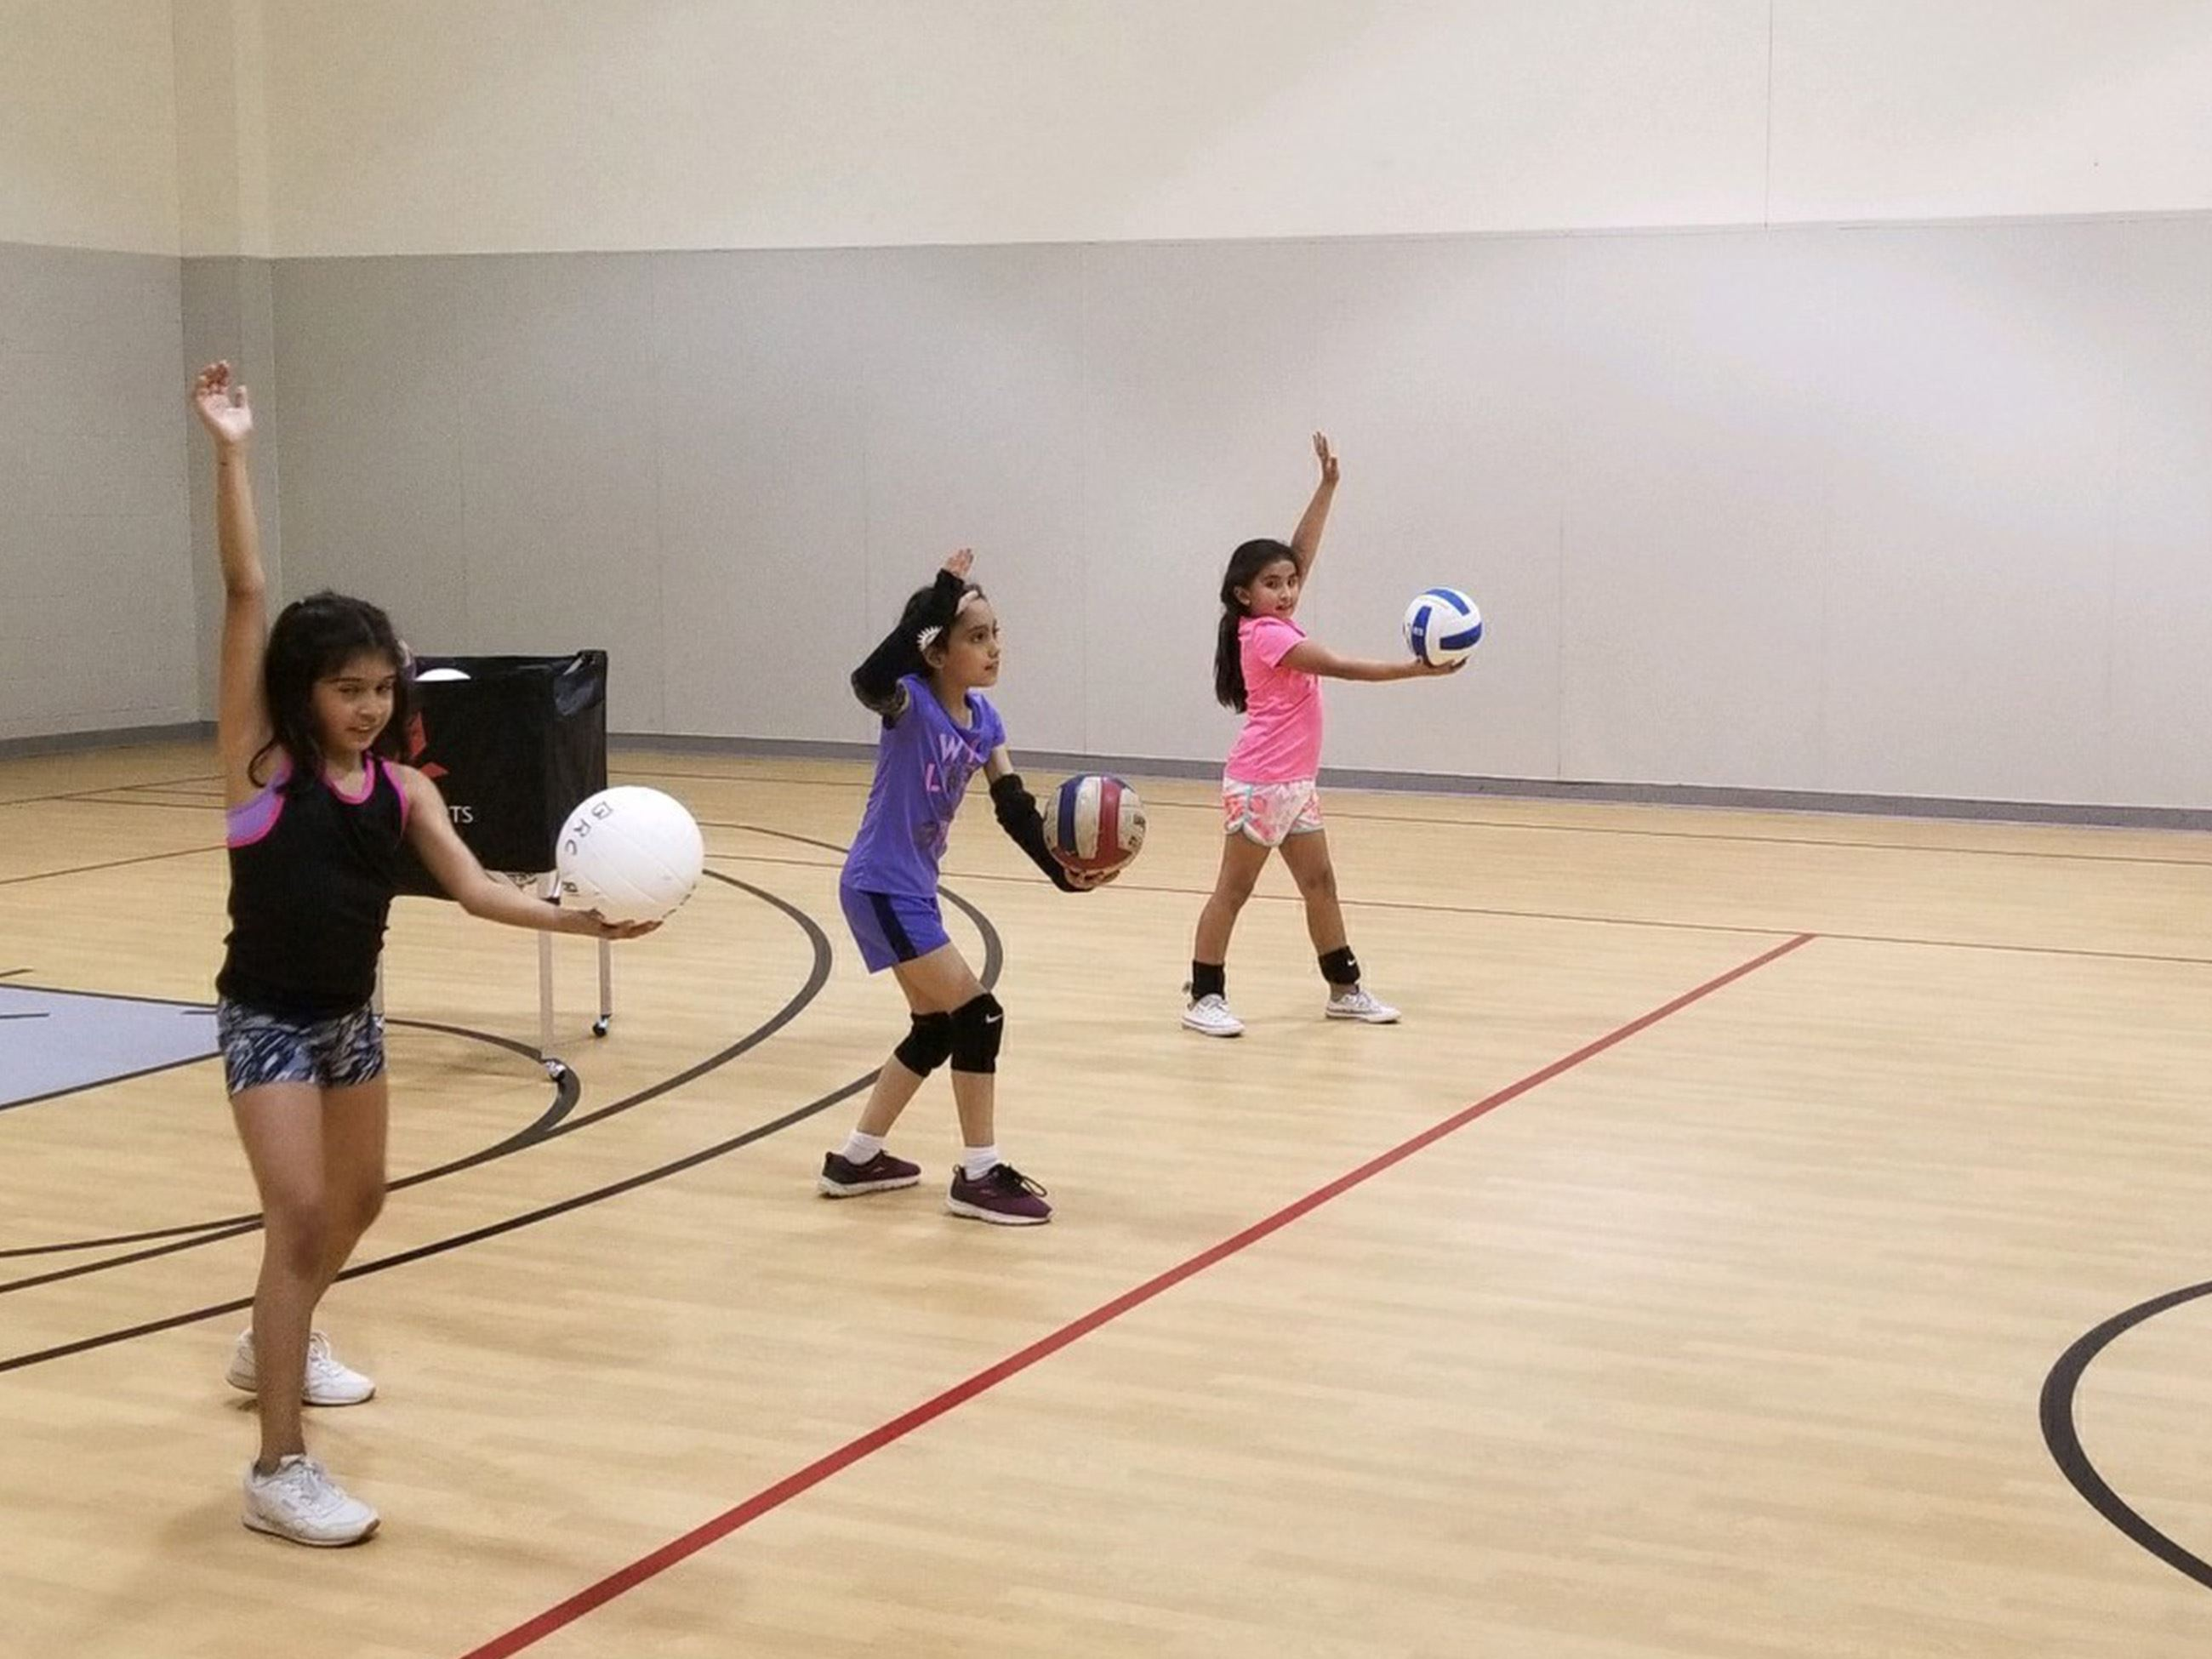 Kids playing volleyball in a gymnasium